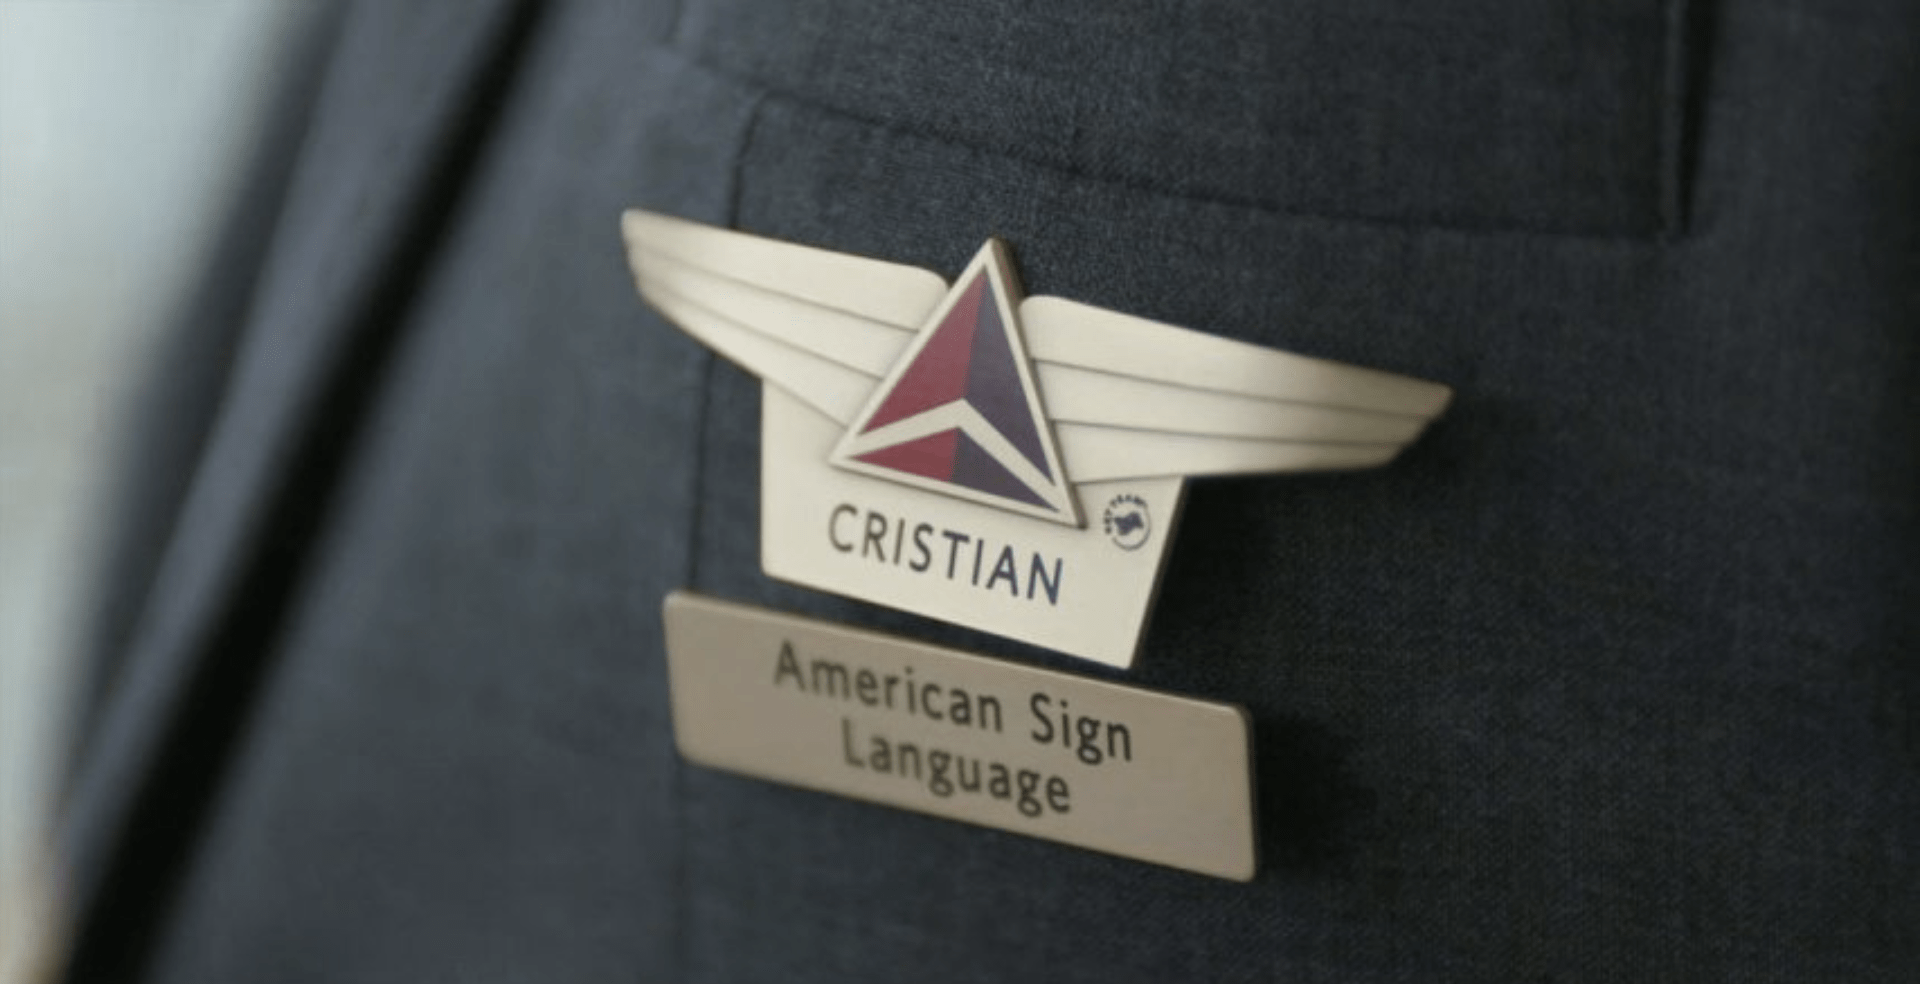 Delta Will Add Sign Language Badges to Company Uniforms